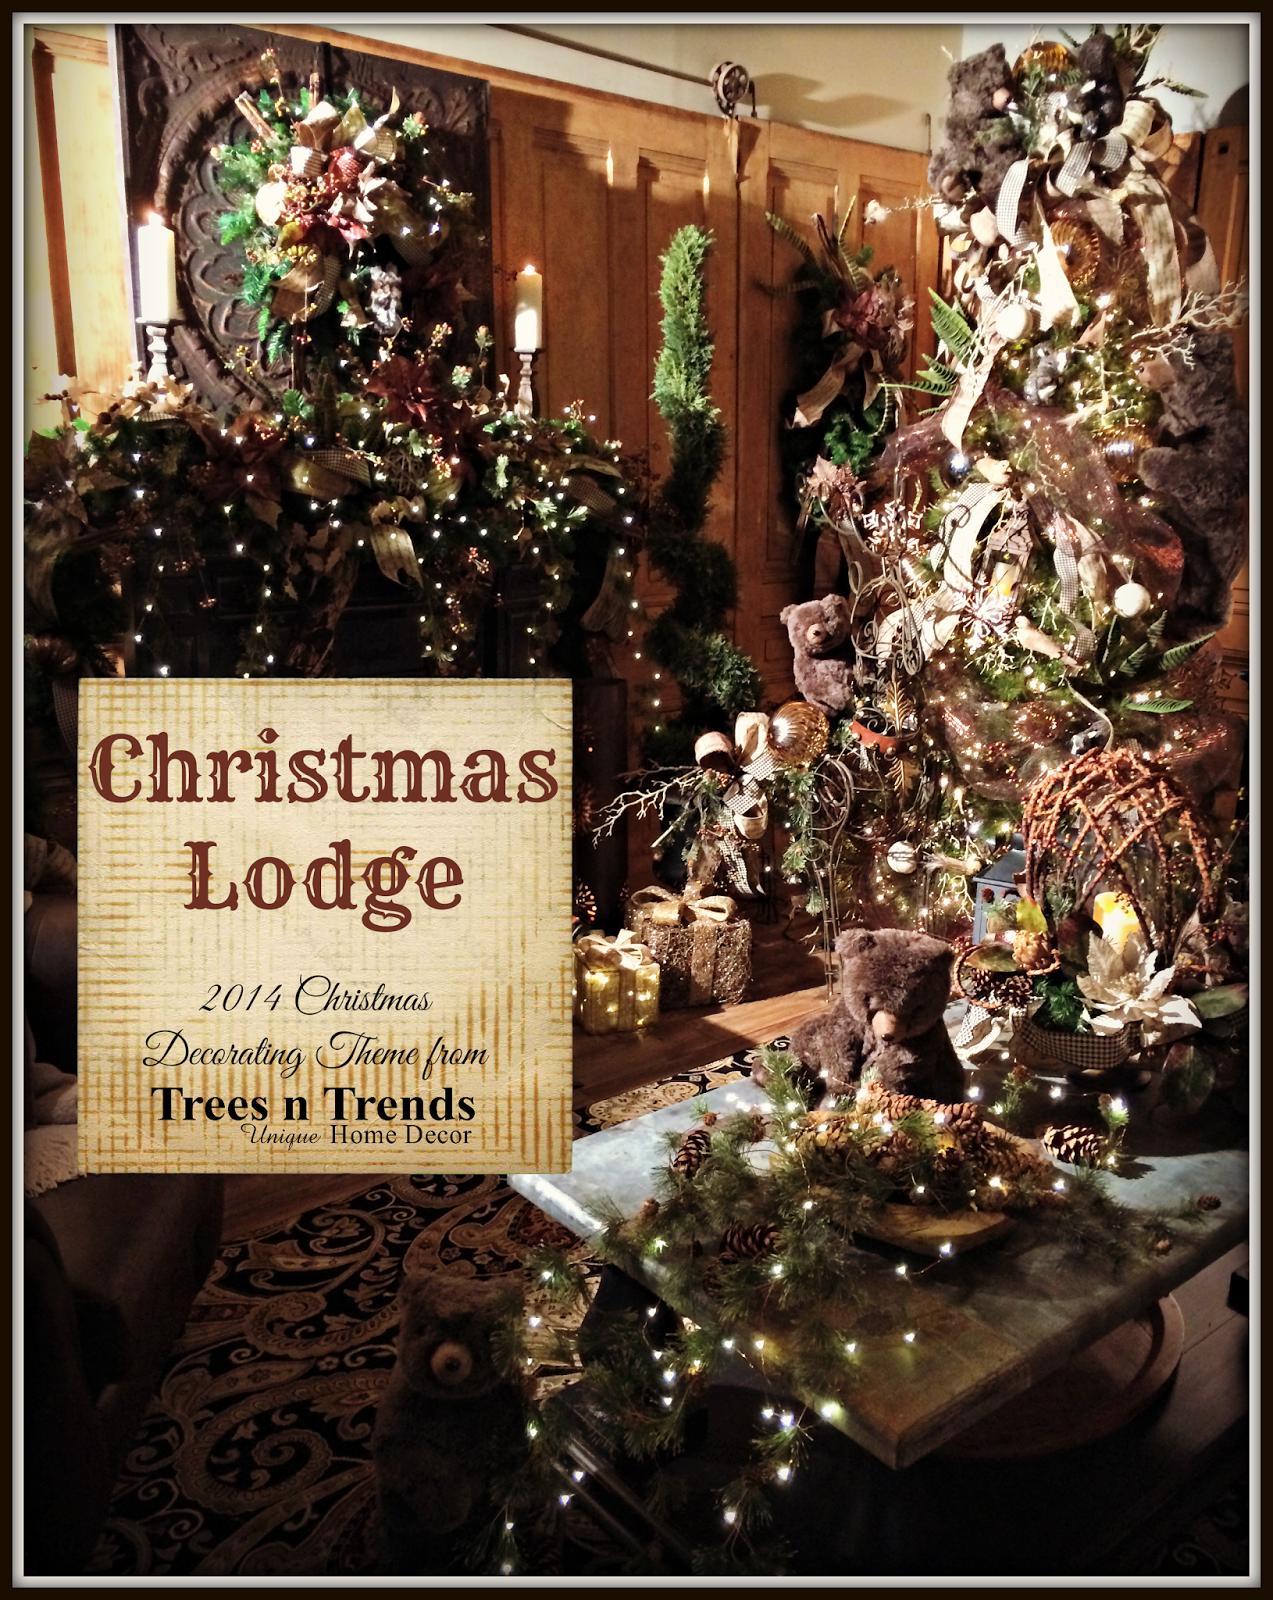 trees n trends unique home decor christmas lodge a manly christmas decorating